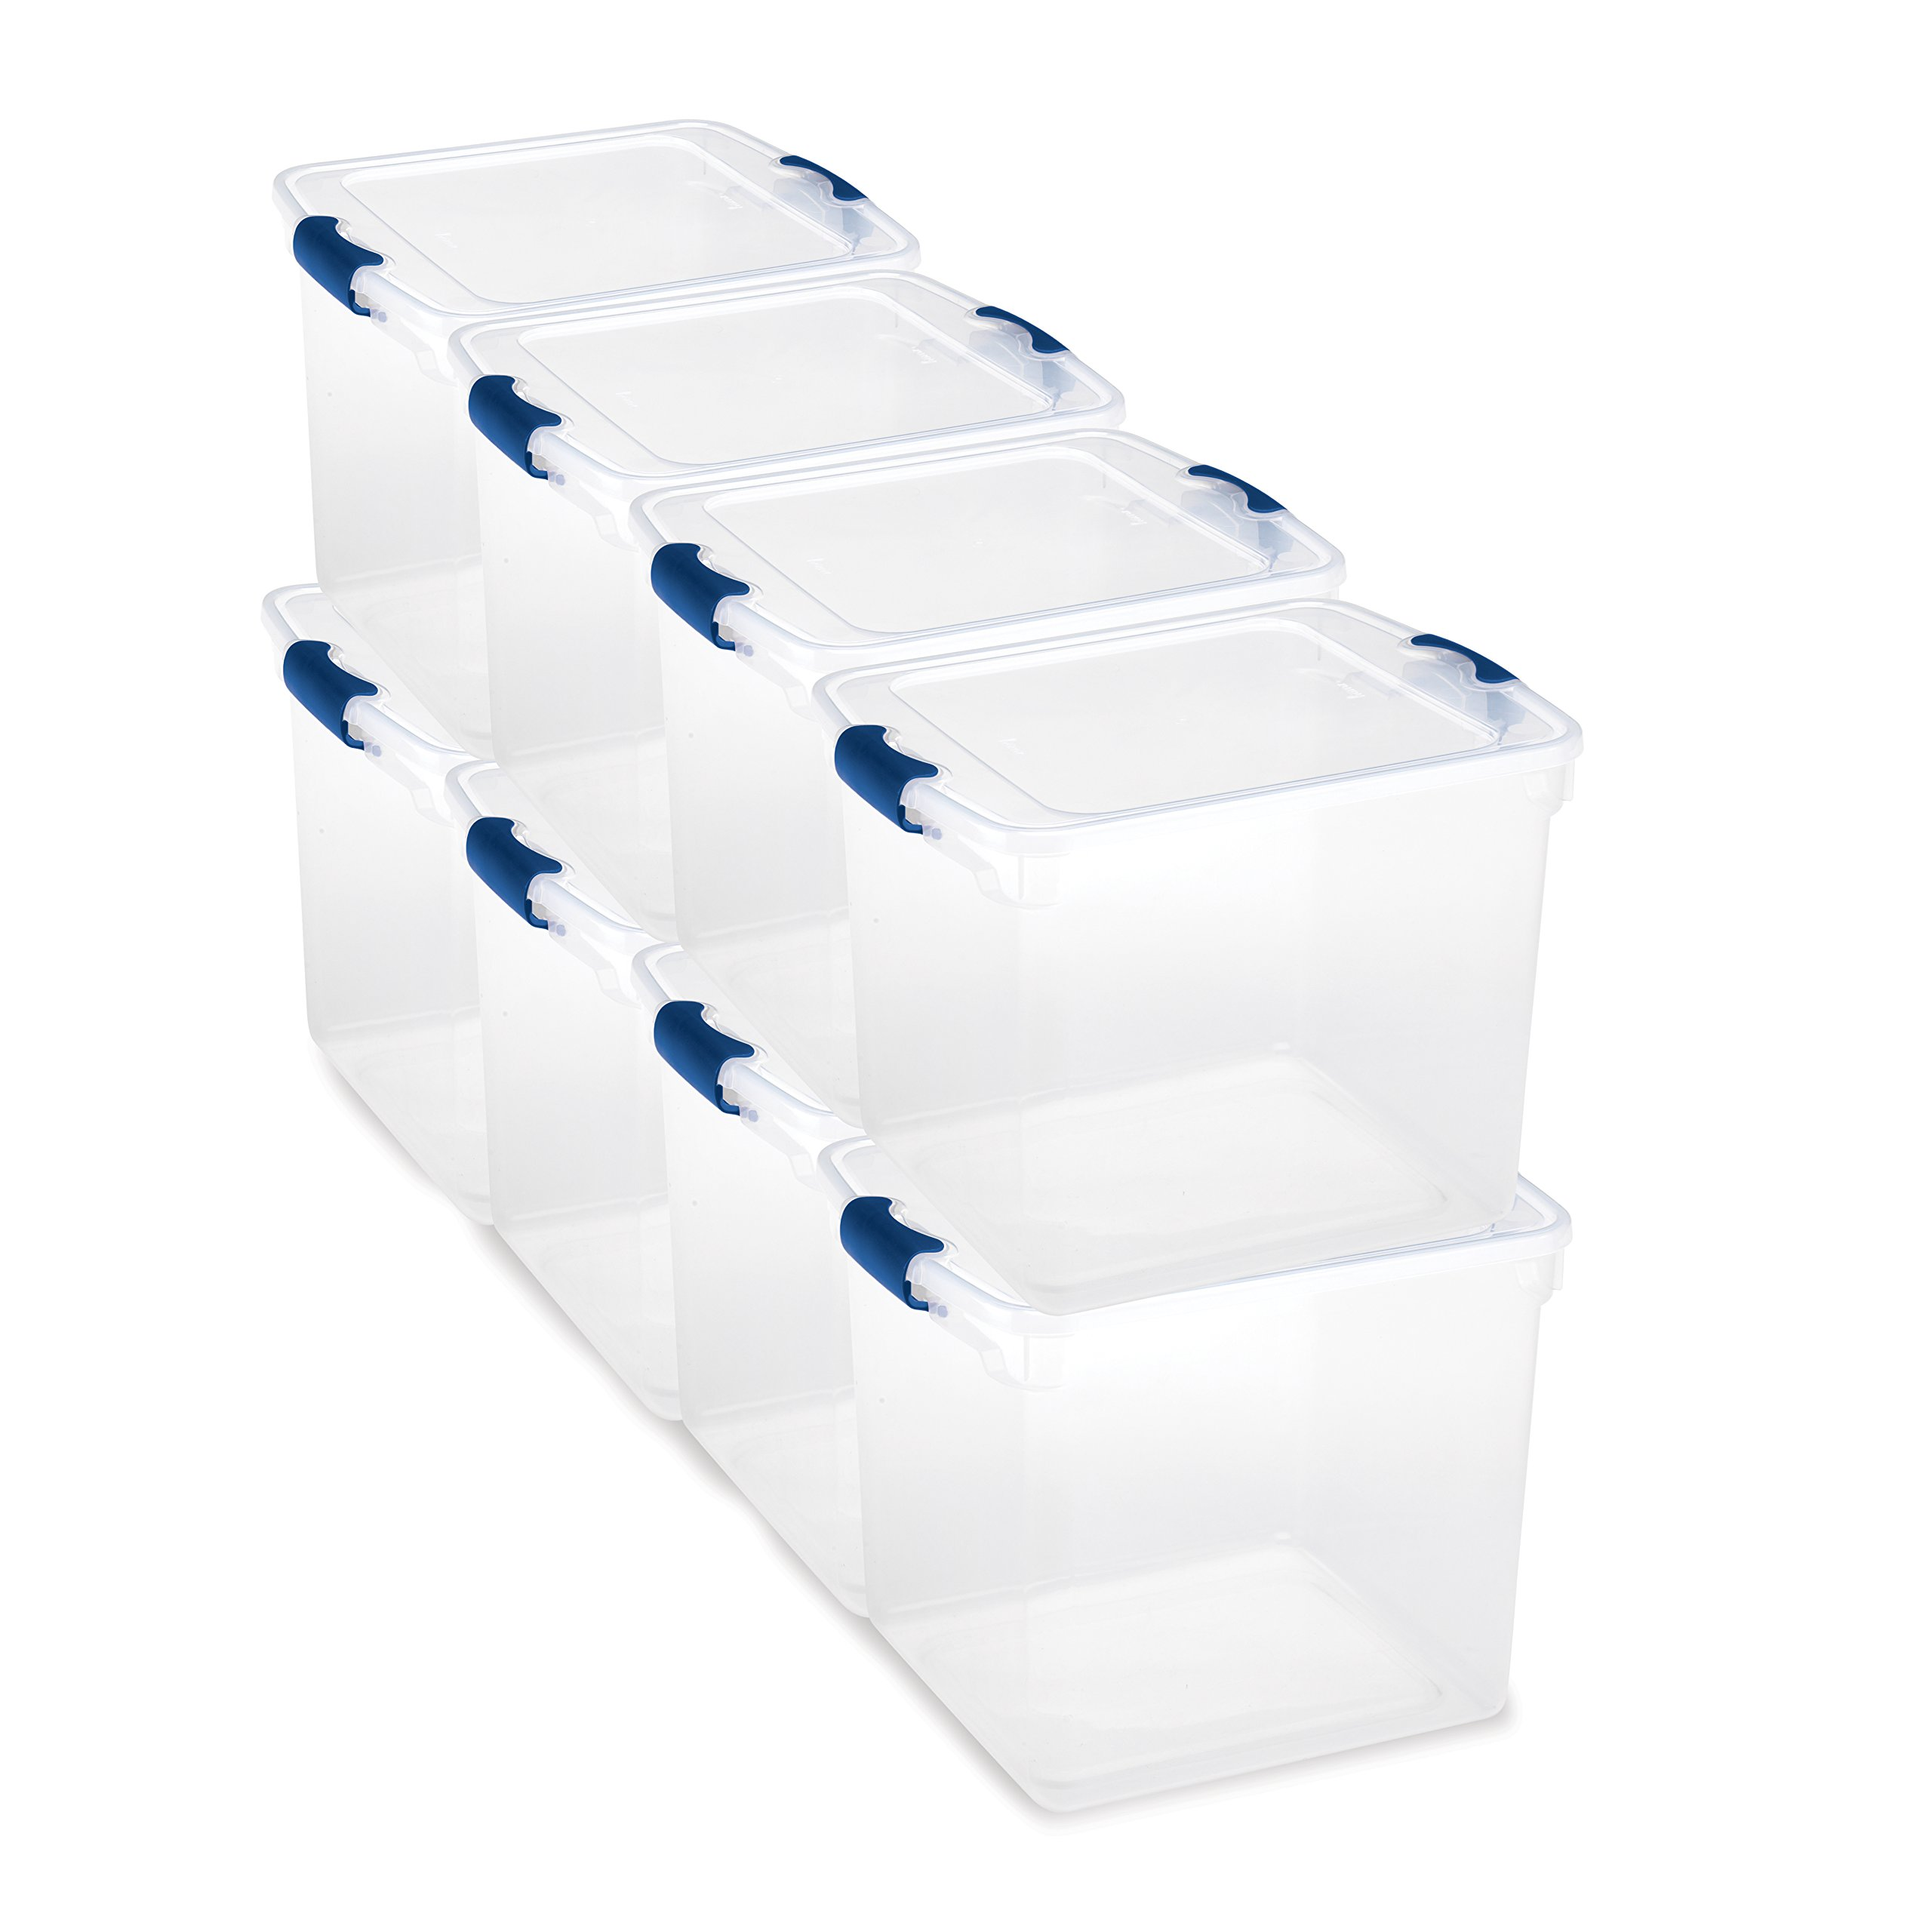 Homz Plastic Storage Tote Box, with Lid, Latching Handles, 31 Quart, Clear, Stackable, 8-Pack by Homz